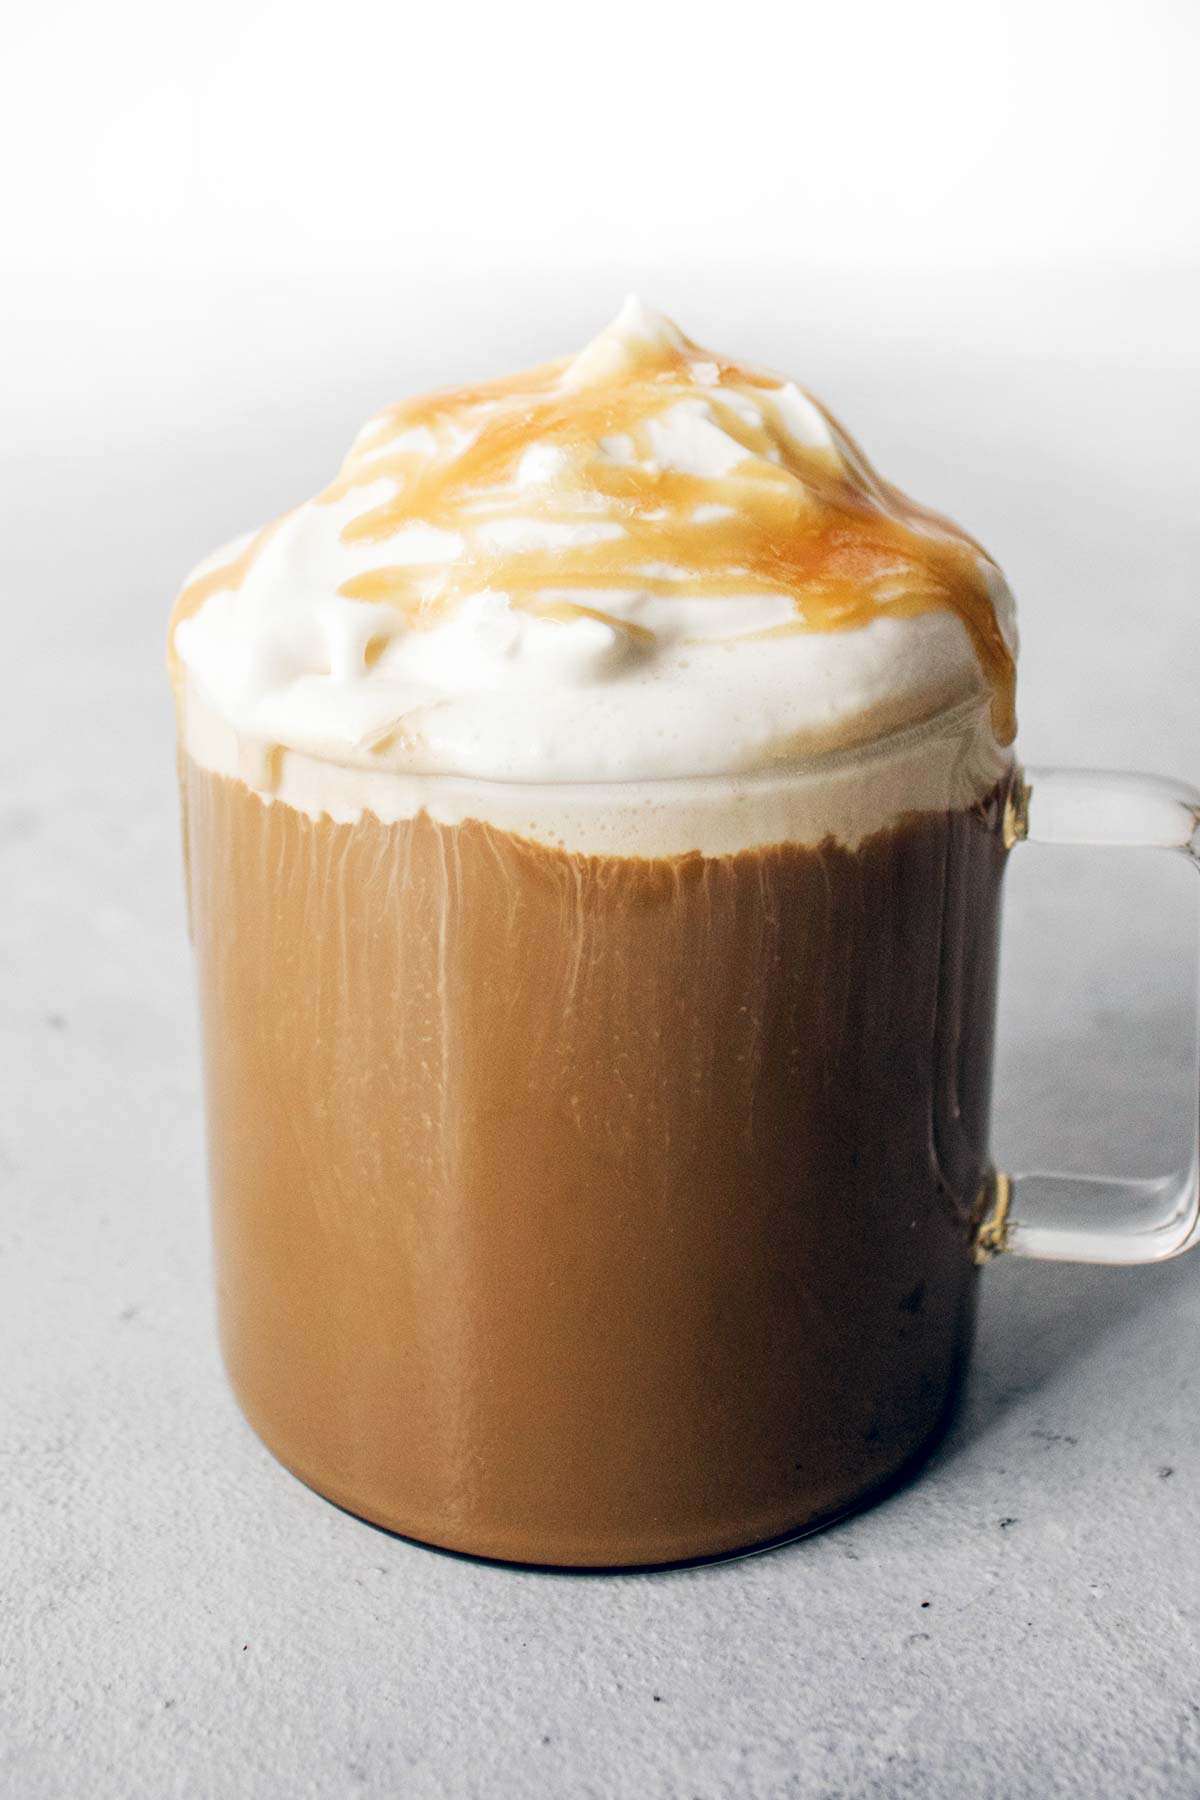 Salted caramel latte topped with whipped cream and caramel drizzle in a glass mug.